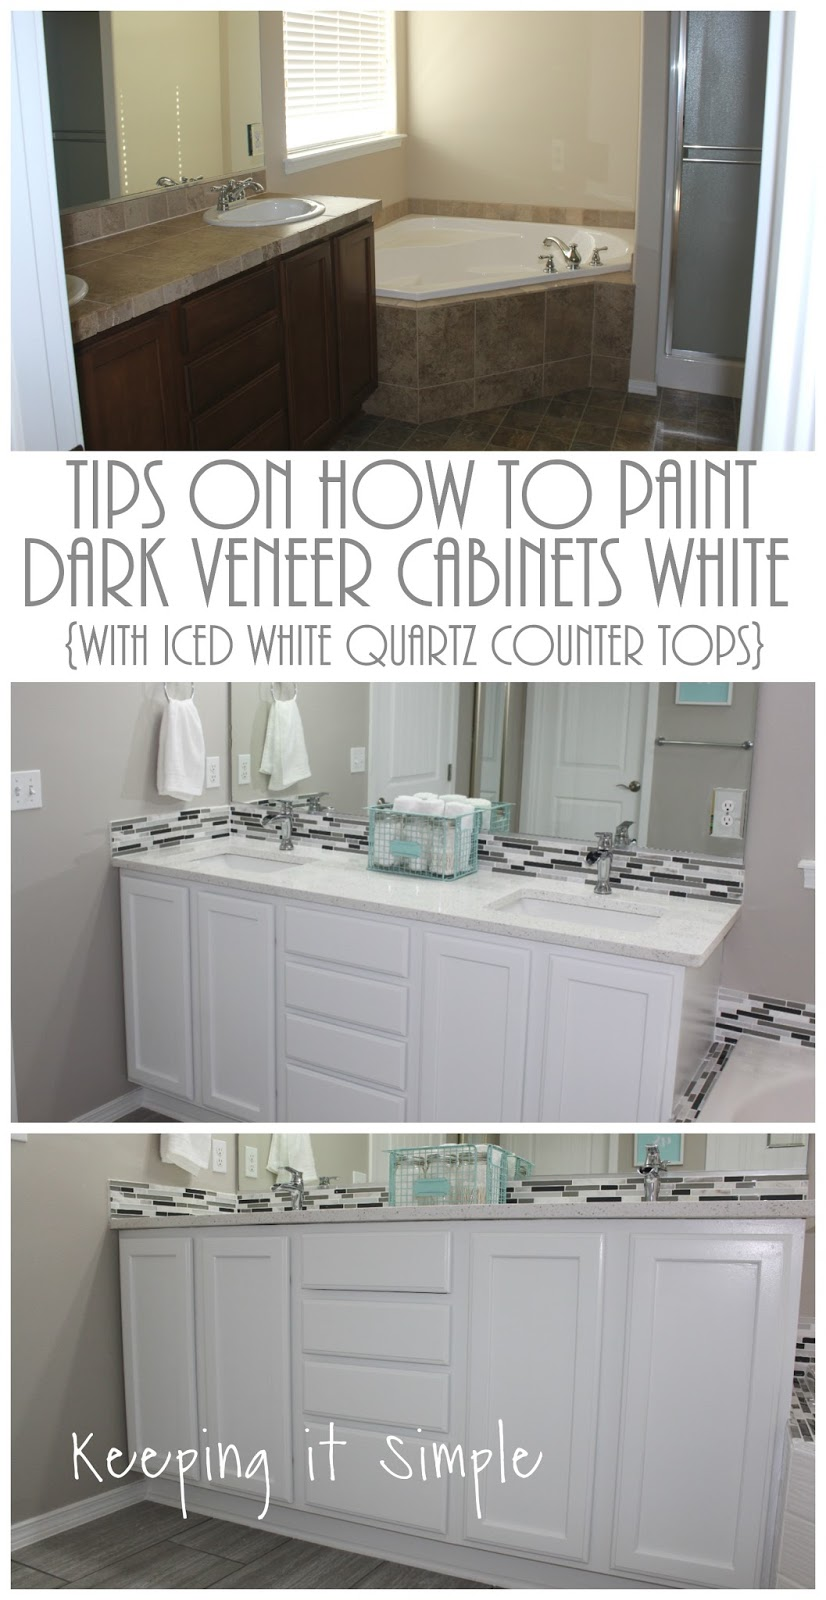 Tips On How To Paint Dark Veneer Cabinets White With Iced White Quartz Counter Tops Keeping